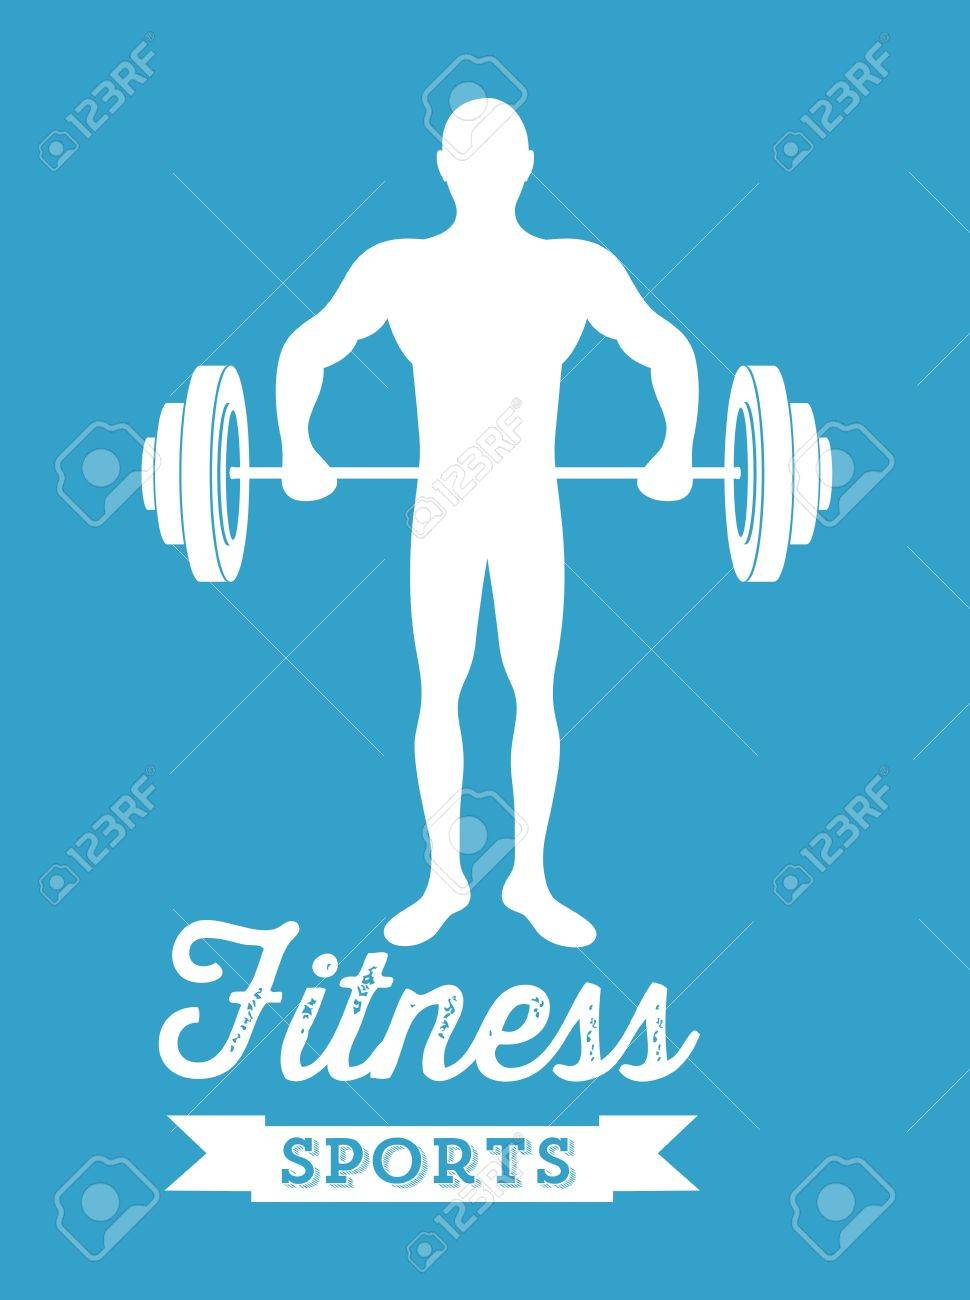 Illustration of Fitness Icons, sports and exercise, caring figure and health, vector illustration Stock Vector - 17786875